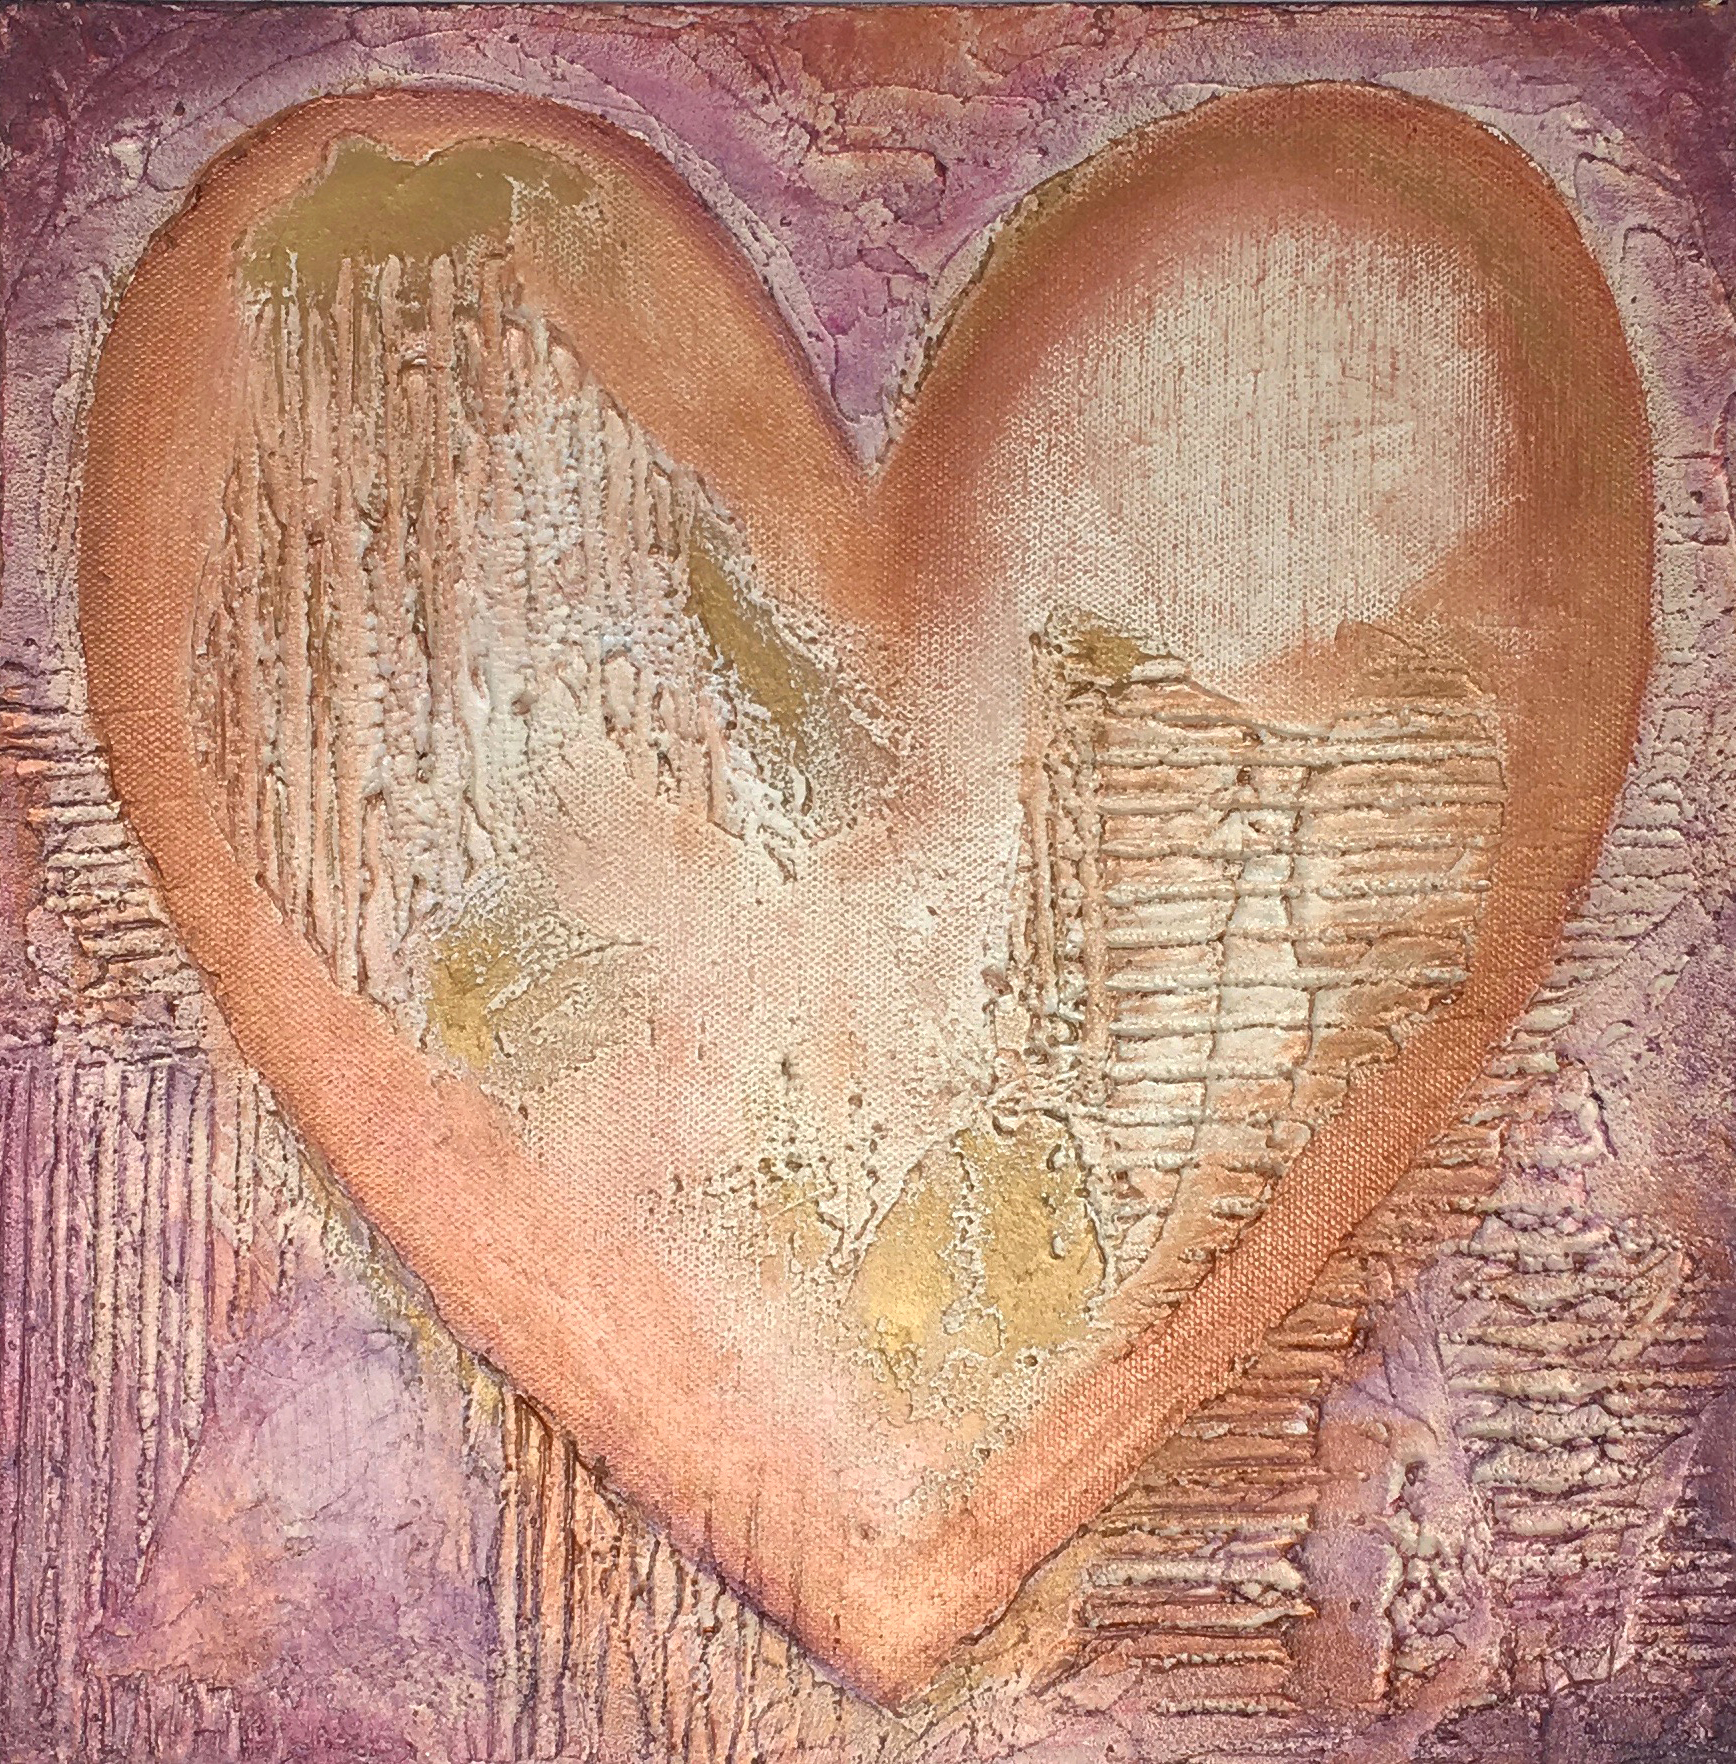 """Touched"" by Deb Ogburn, Mixed Media on gallery profile canvas, 12x12in 2017, $65"